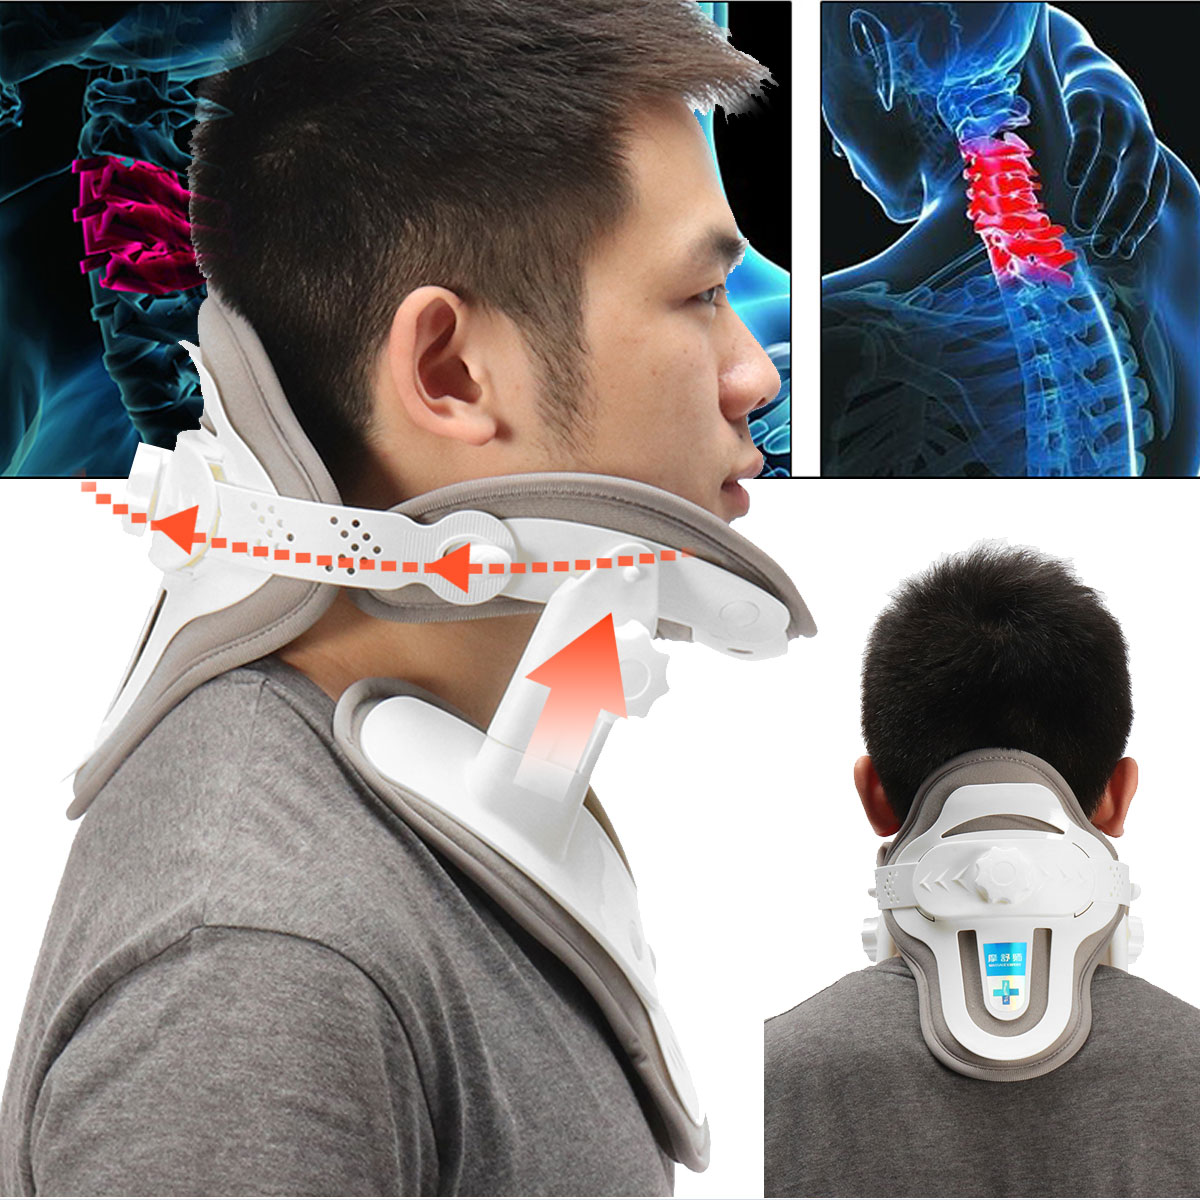 Household Adjustable Neck Brace Stretched Cervical Traction Inflatable Spondylosis Orthopedic Neck Collar Stretch Machine алмазная мозаика p28